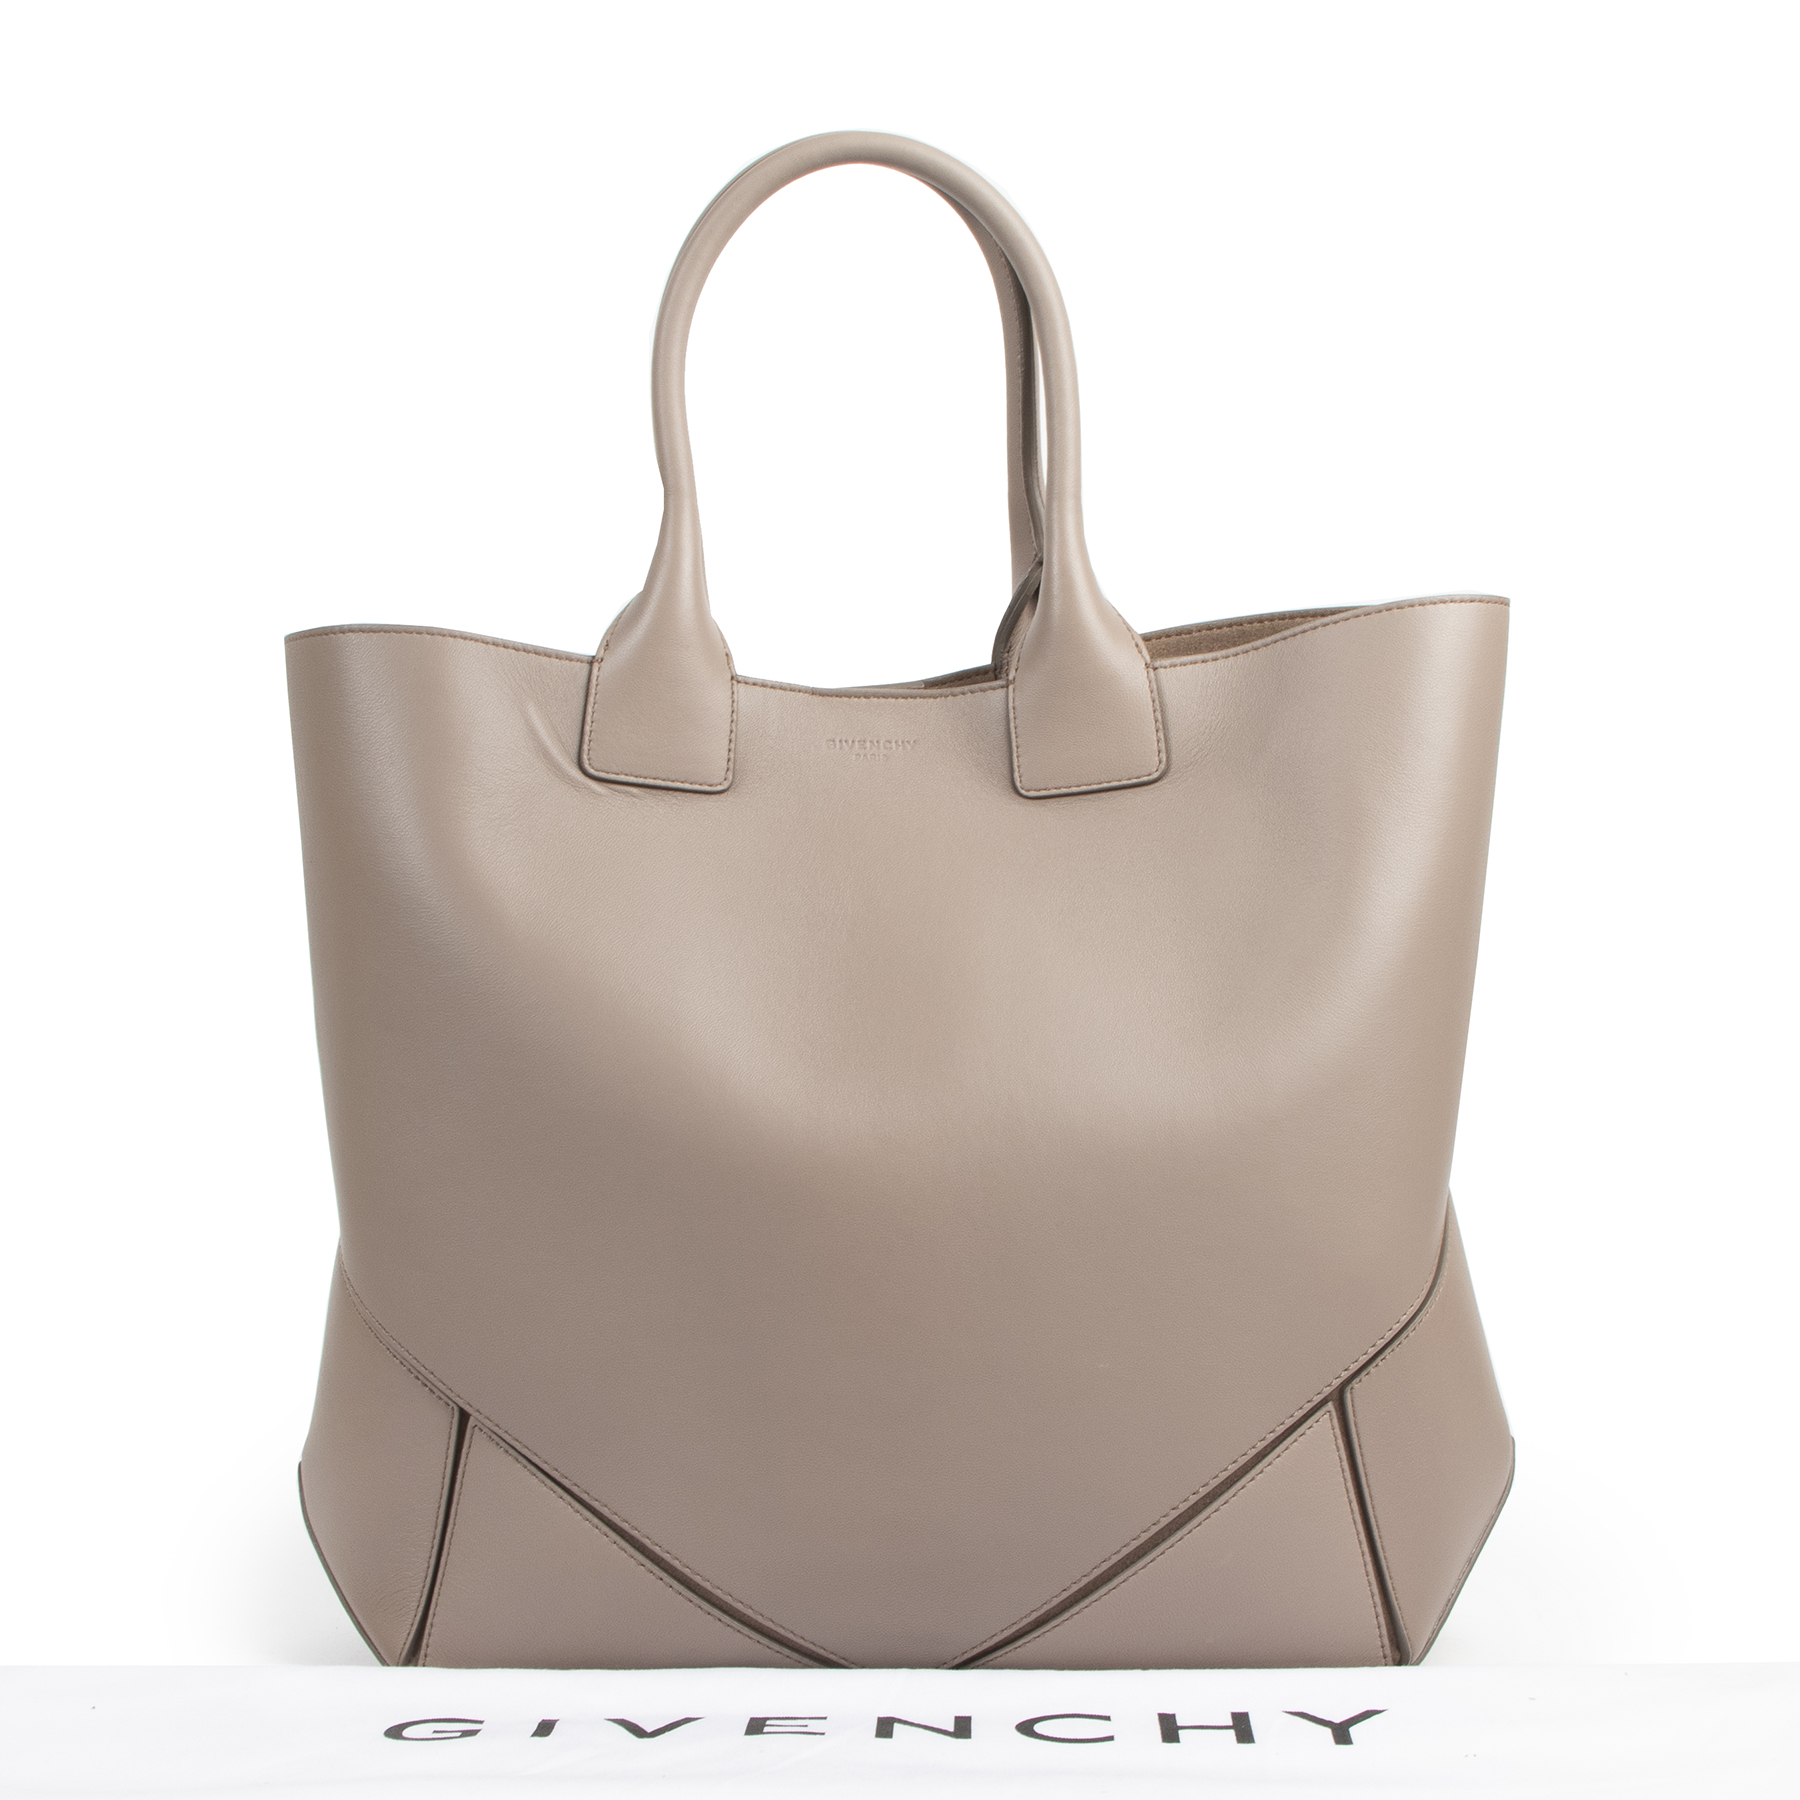 Givenchy Easy Medium Antigona Blush Taupe Leather Tote for the best price at Labellov